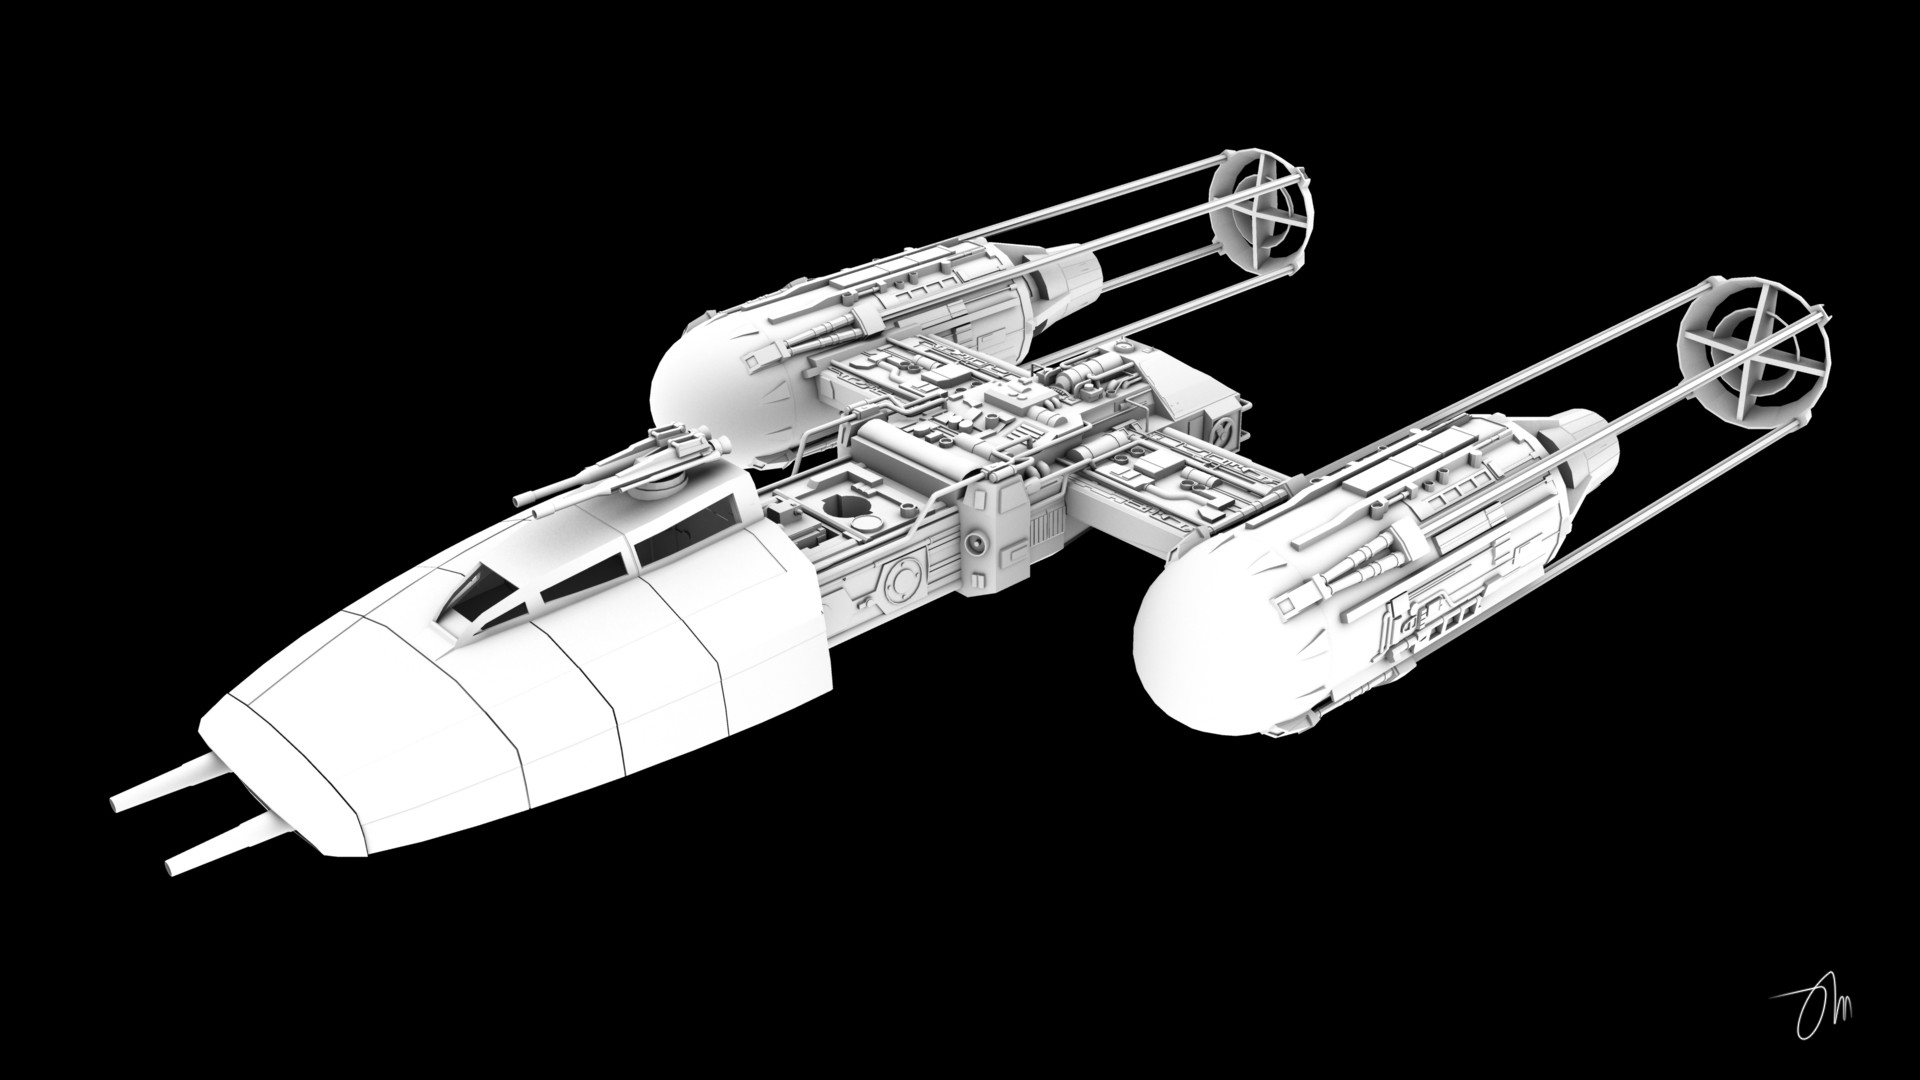 BTL Y Wing Starfighter Profile By JasonMartin3D